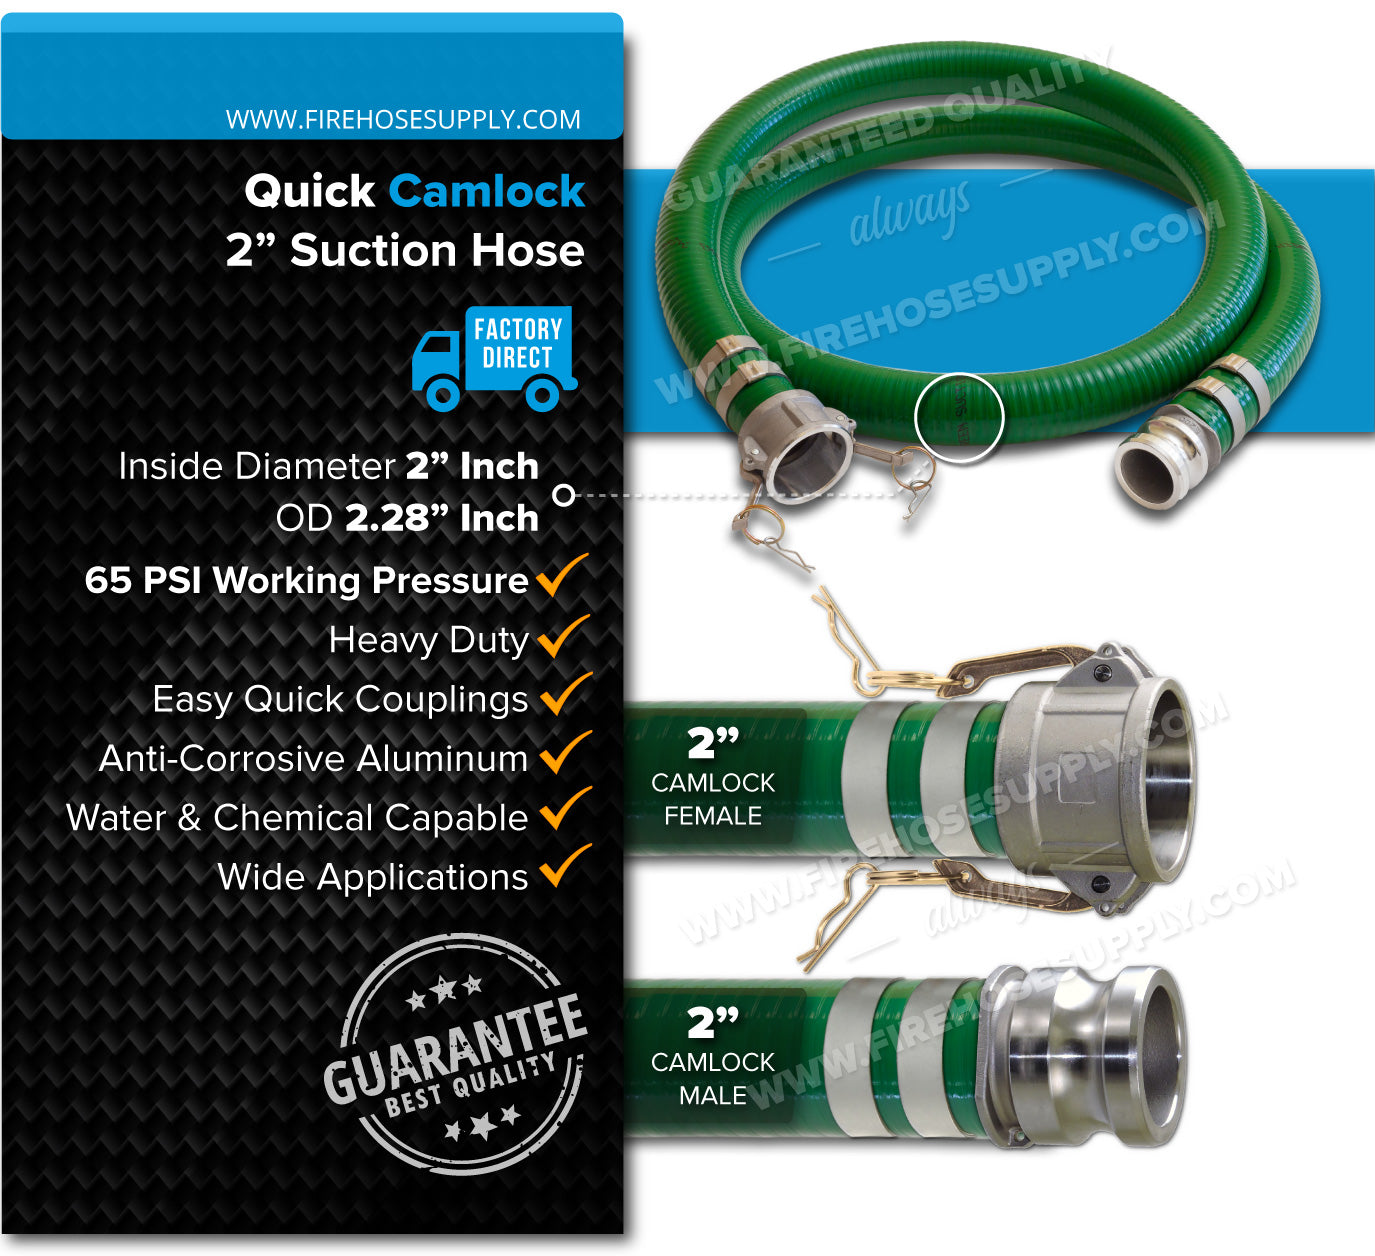 2 Inch Camlock Female x Male Green Suction Hose Overview